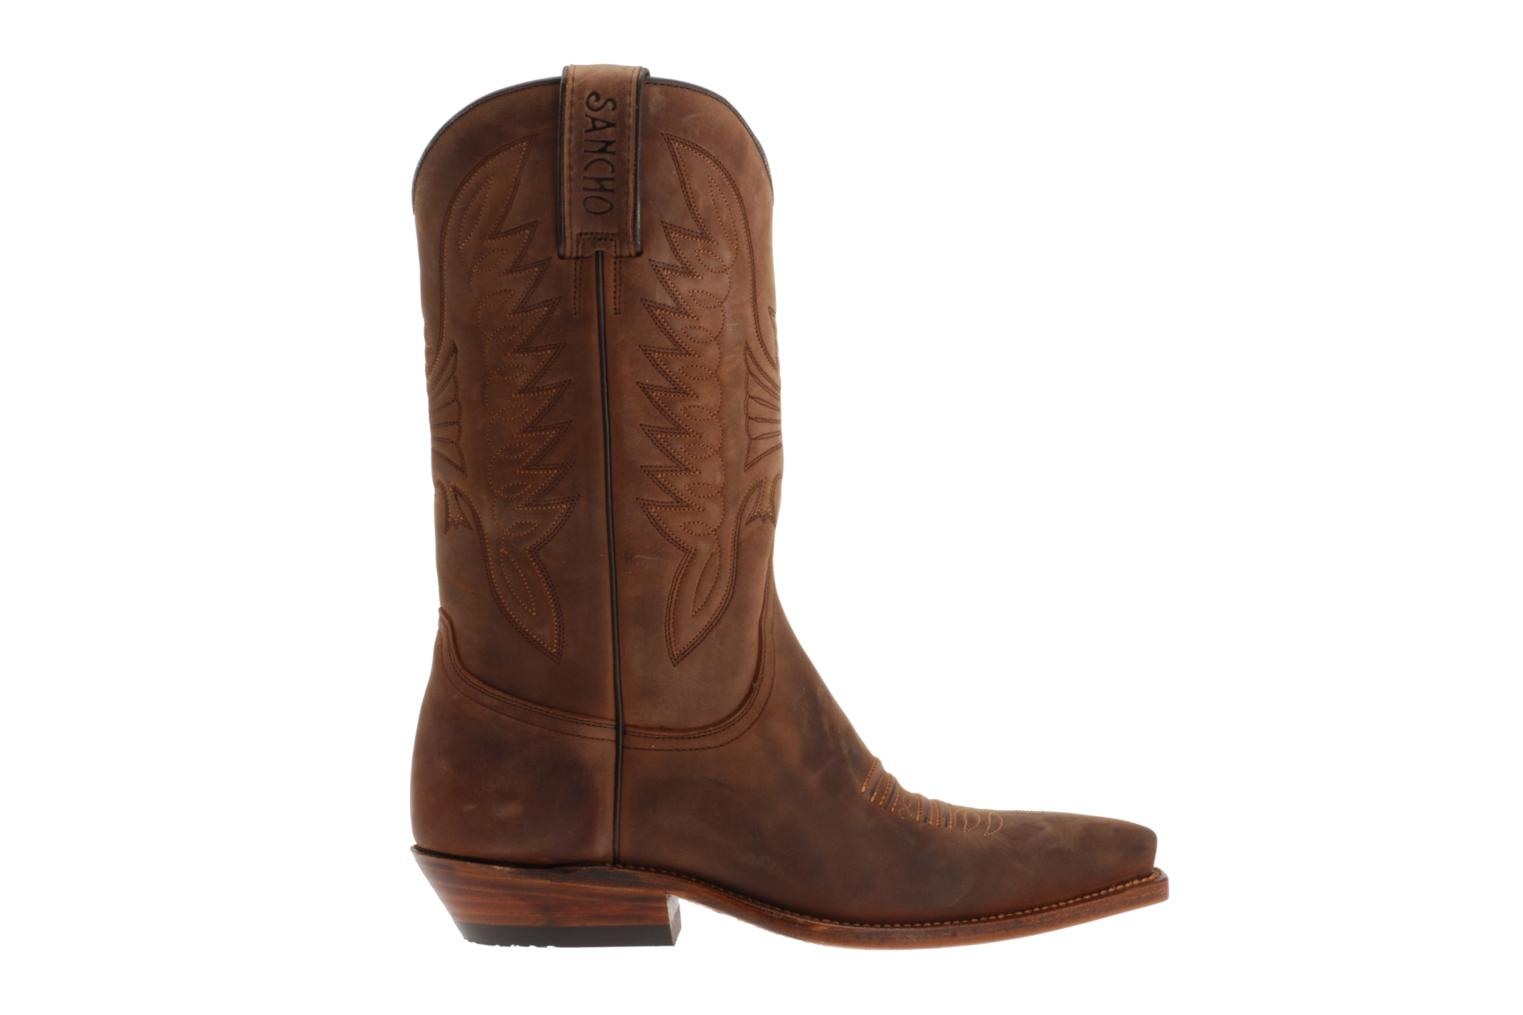 Sancho Boots Elvis Femme Boots Amp Wellies In Brown At